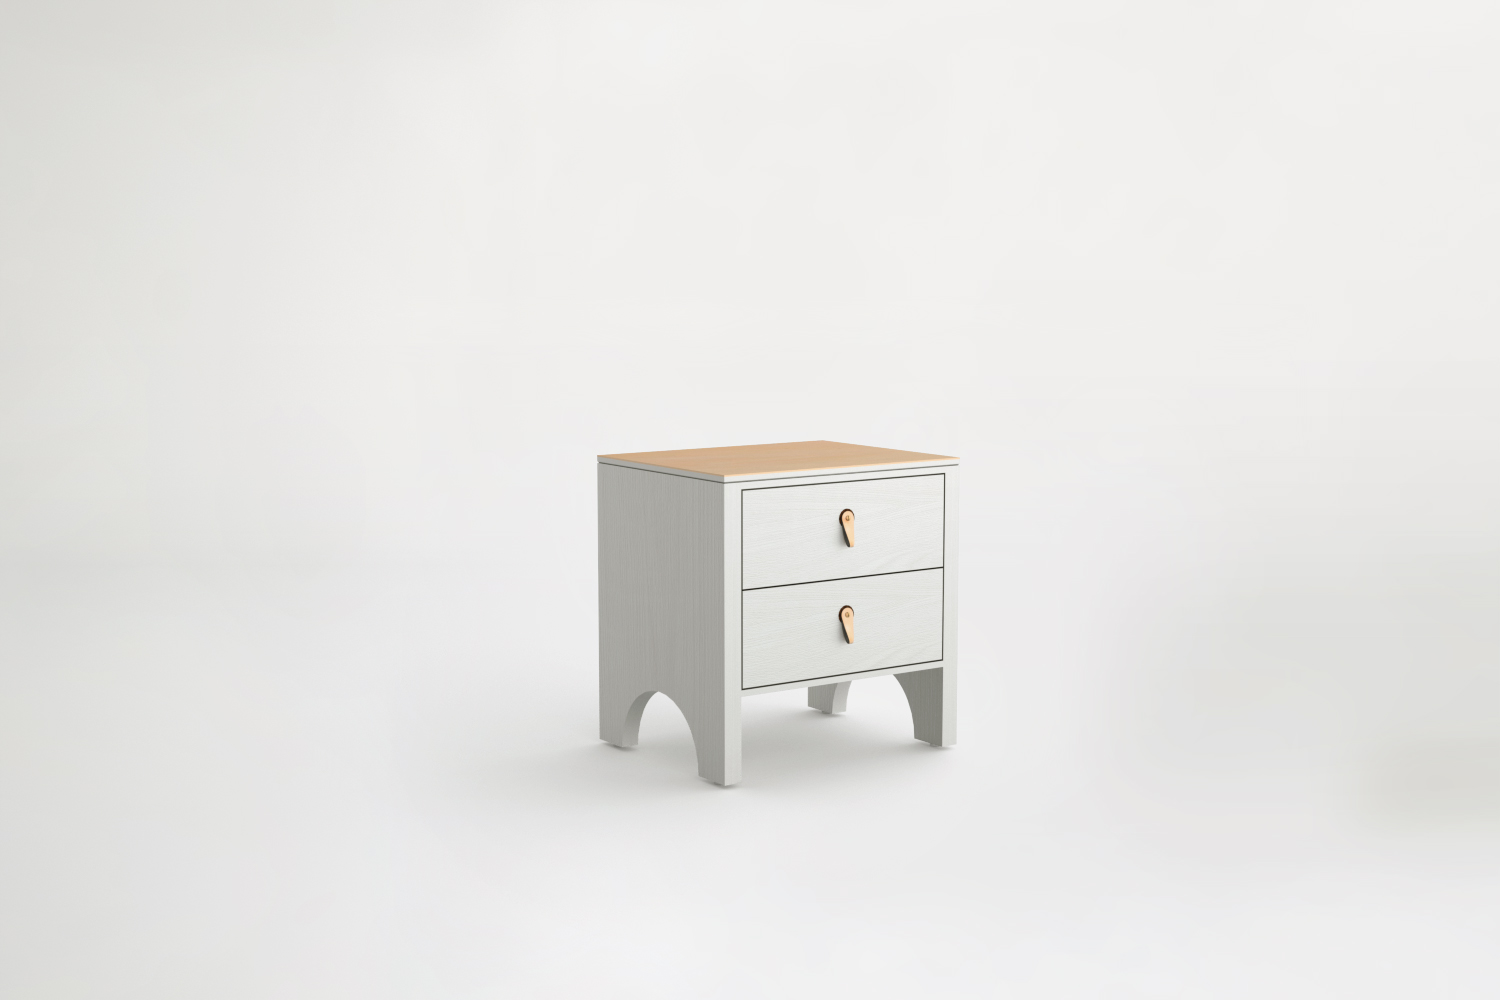 YUCCASTUFF_ZACATE SIDE TABLE_VIEW 001.jpg